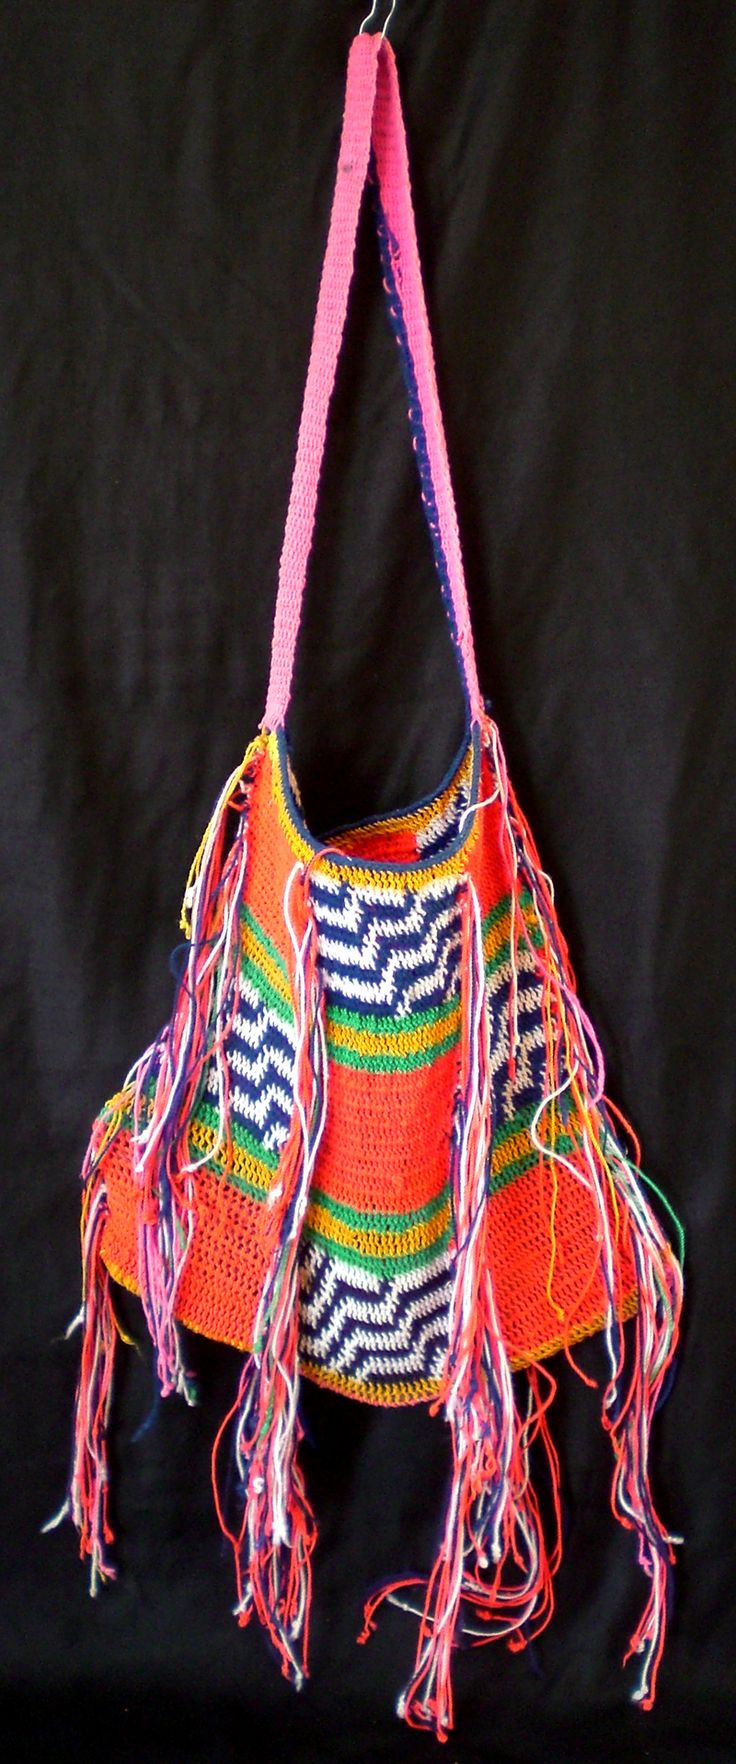 '8 Bilum from the Highlands (1)' • colourful bilum • in tribal textiles • photo found on eBay by riawati